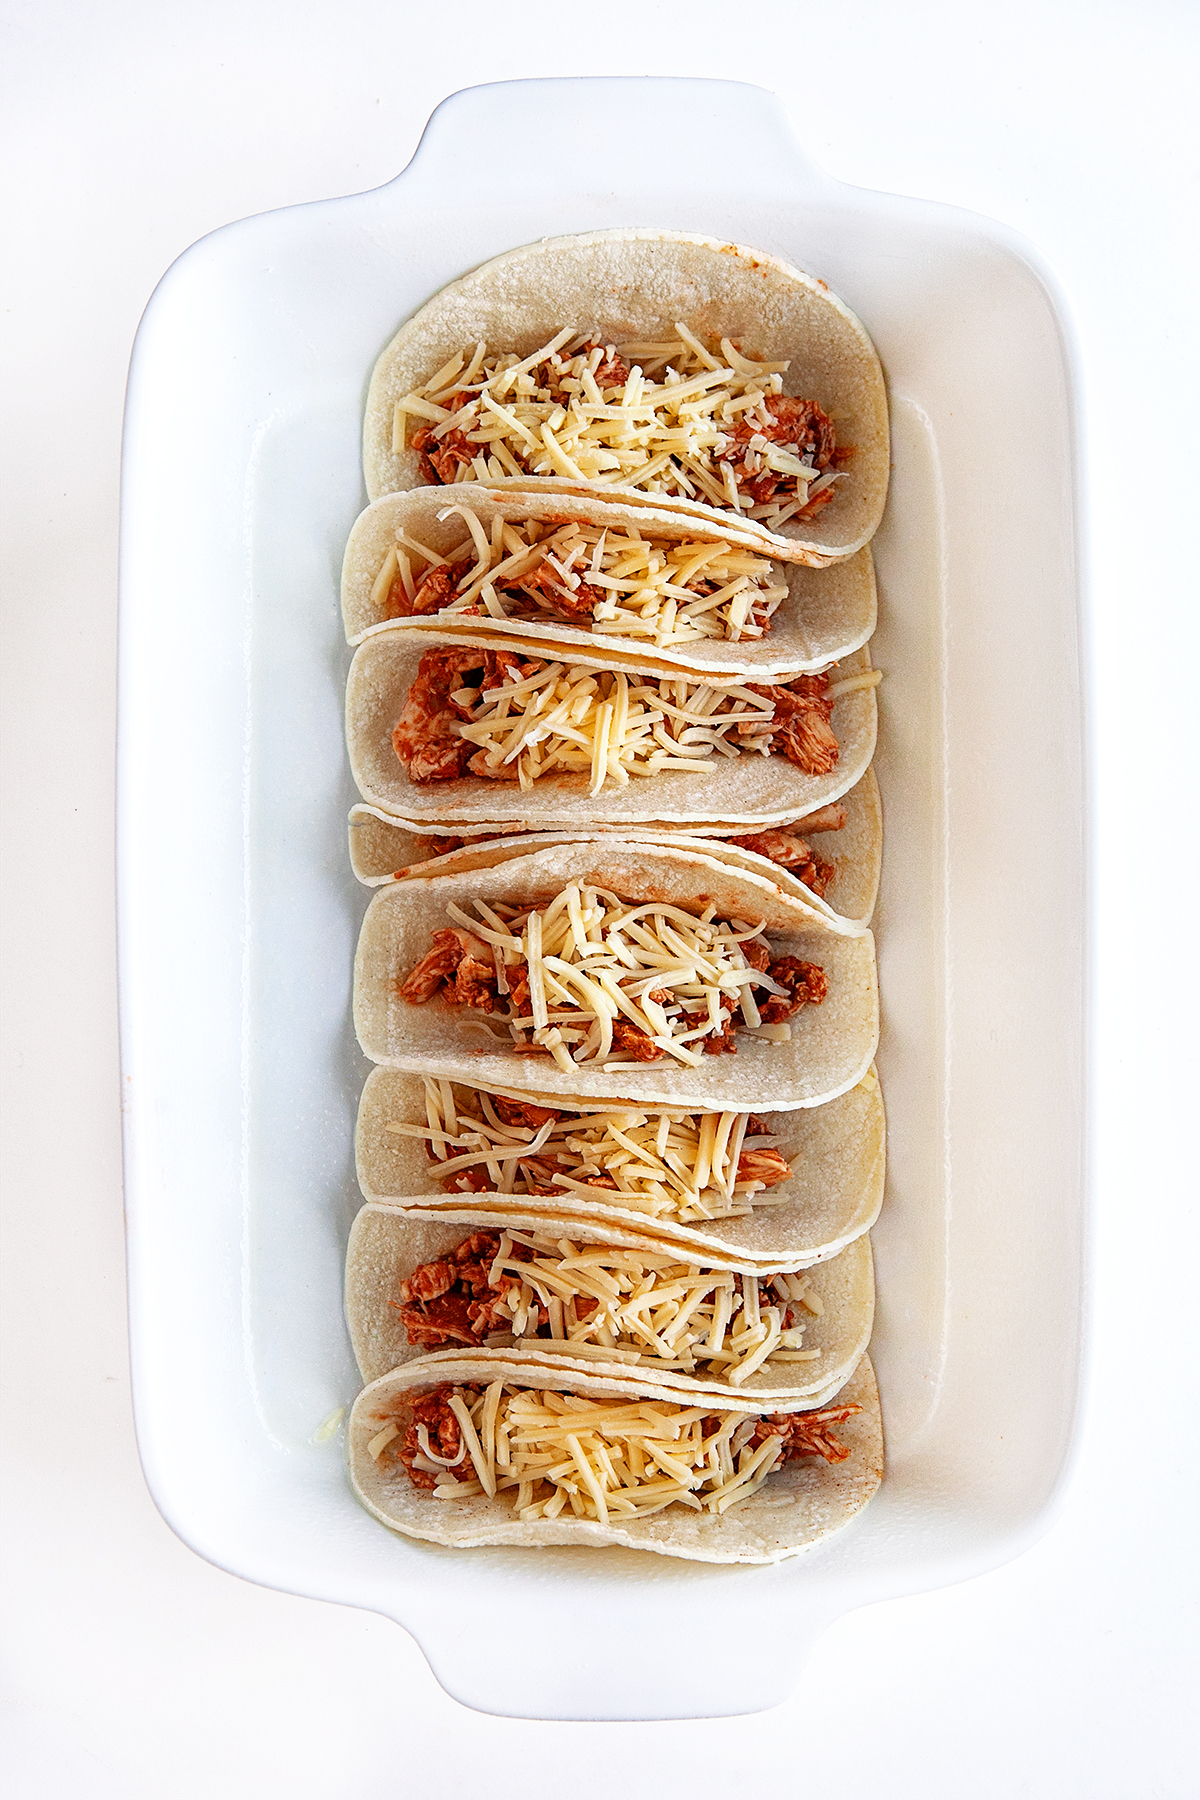 Tacos ready to go in the oven